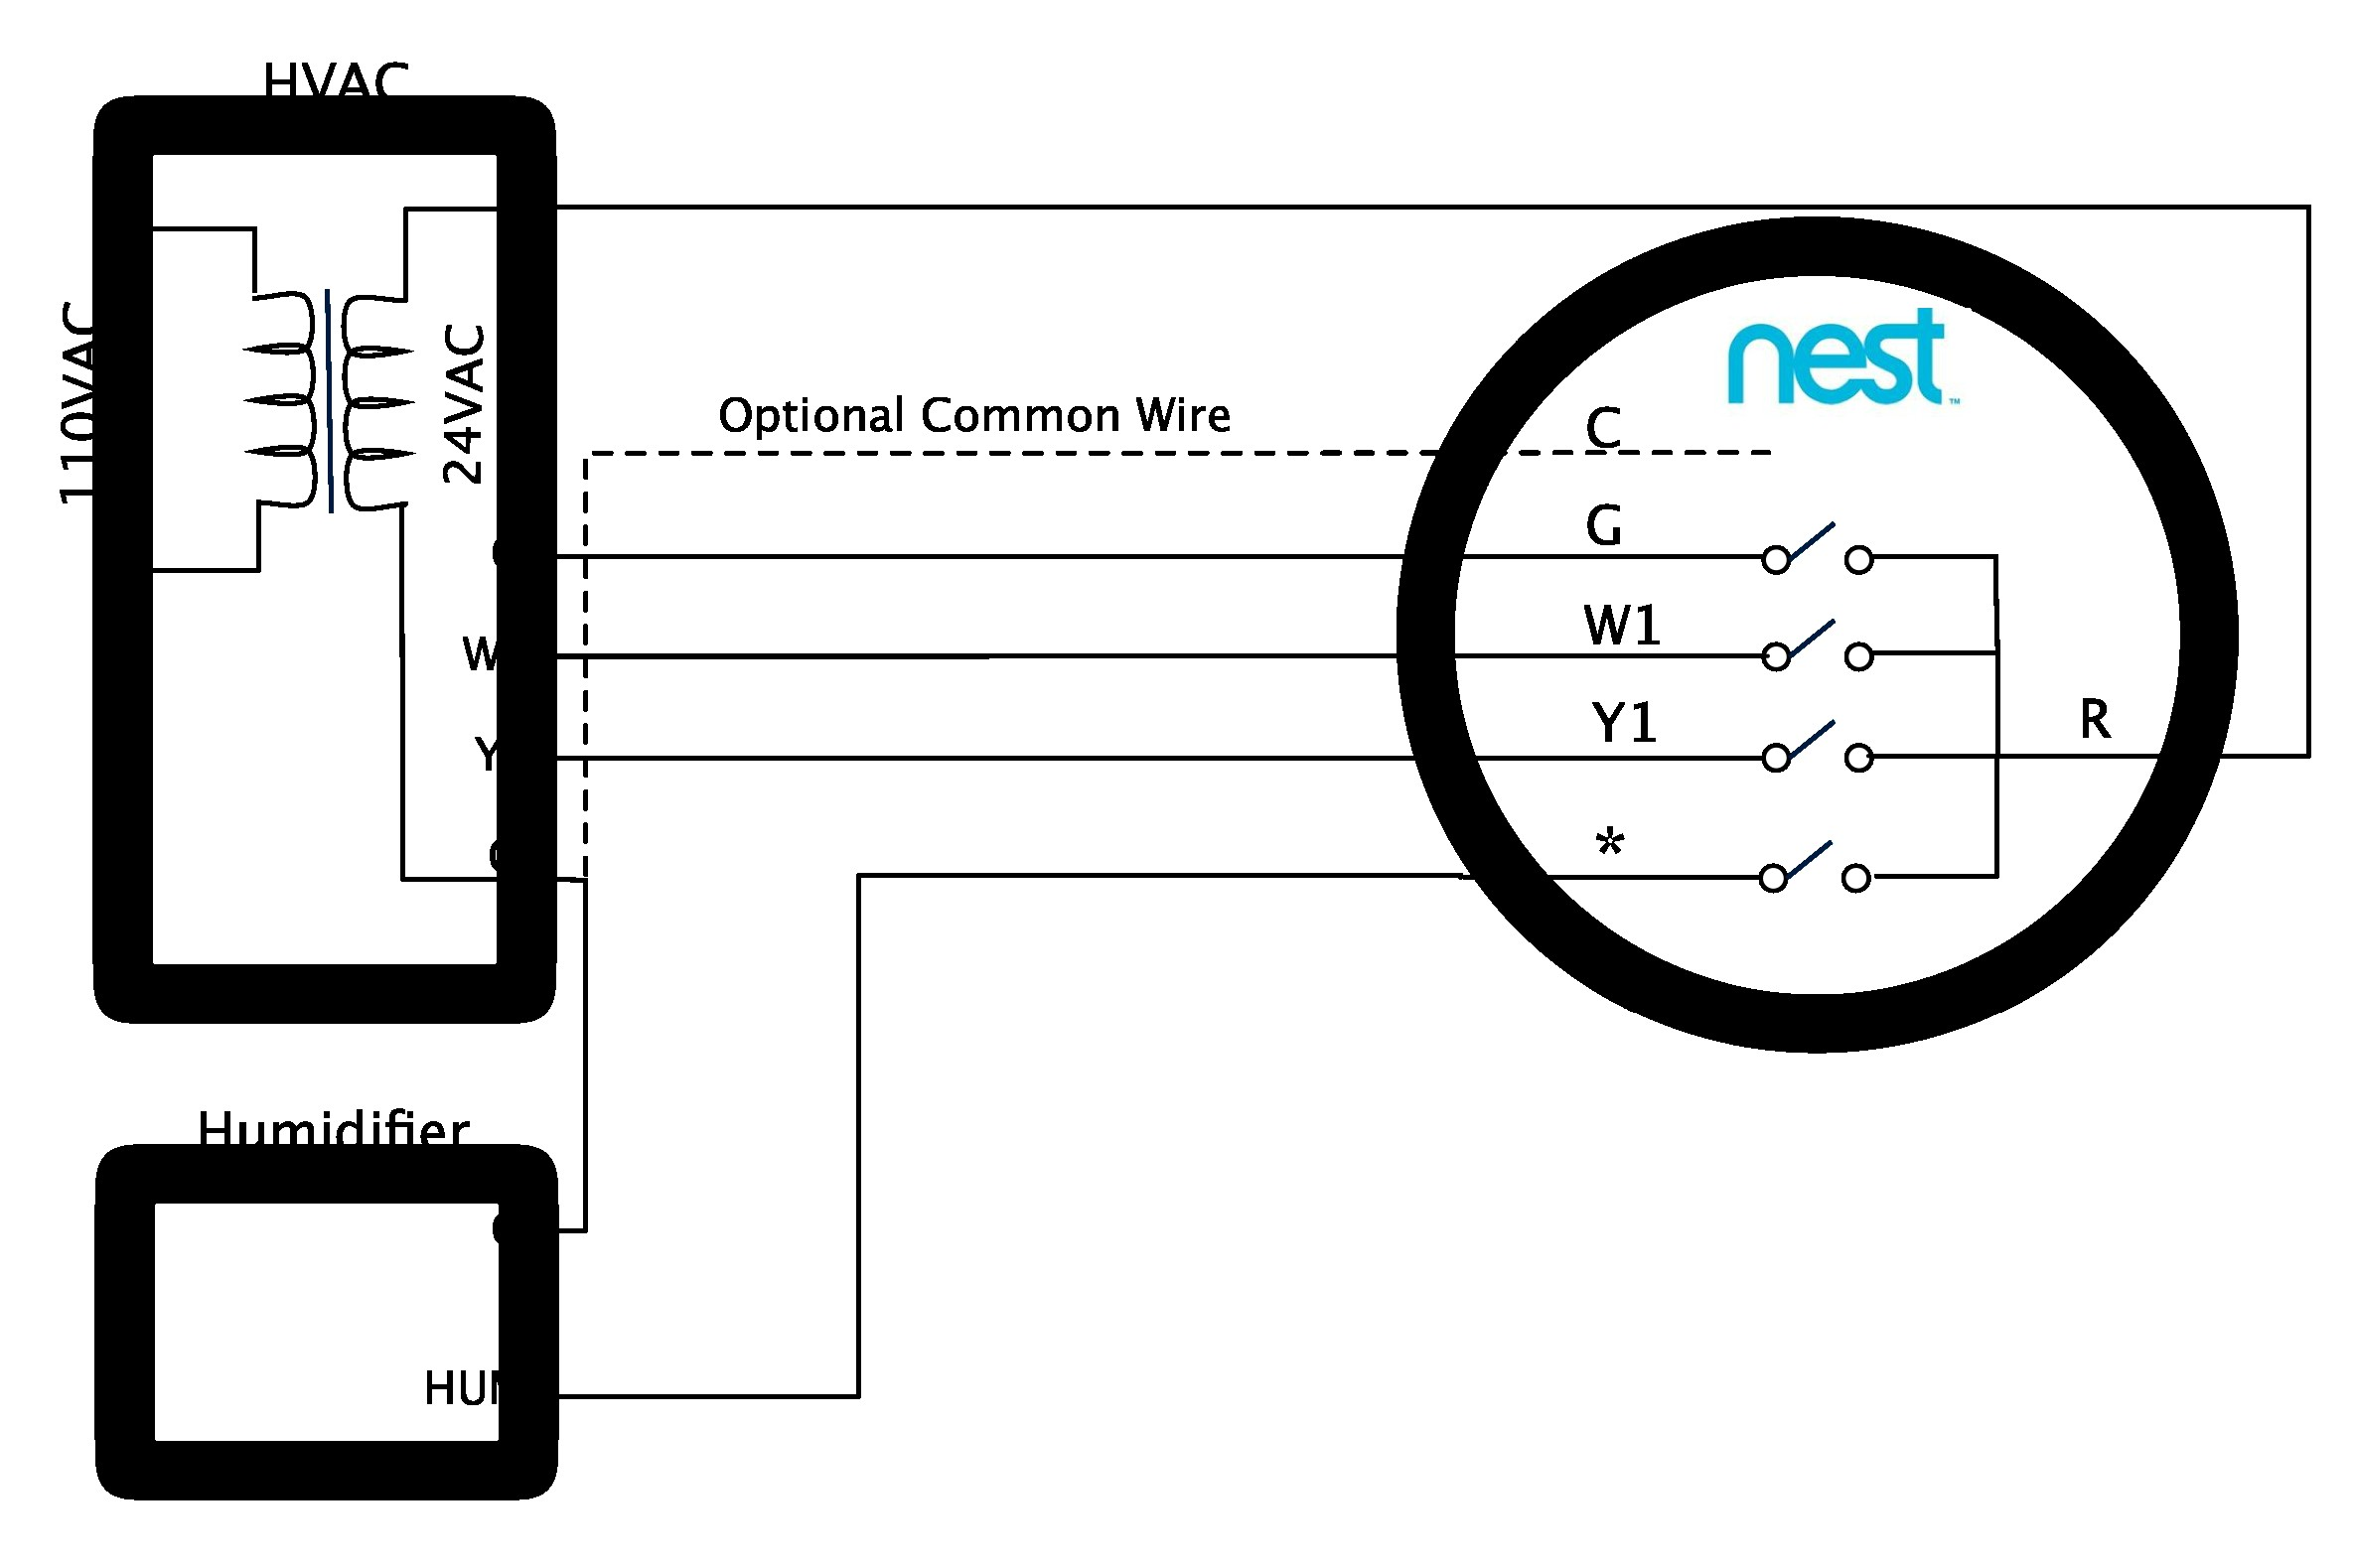 Nest thermostat Wiring Diagram Nest Learning thermostat Advanced Installation and Setup Help for In Of Nest thermostat Wiring Diagram